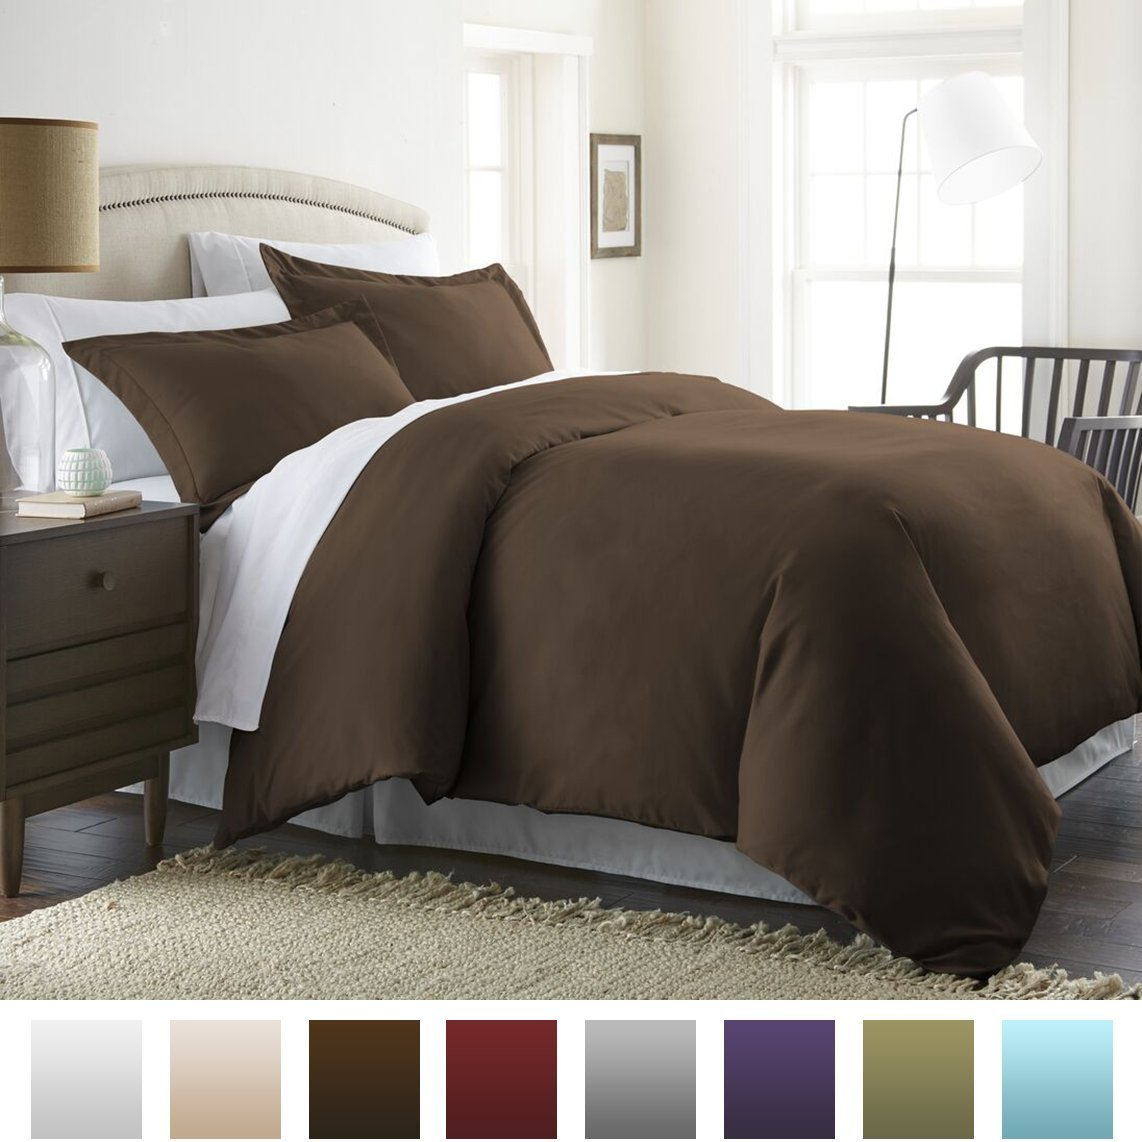 3 Piece Duvet Cover Set - King/Cal King, Chocolate